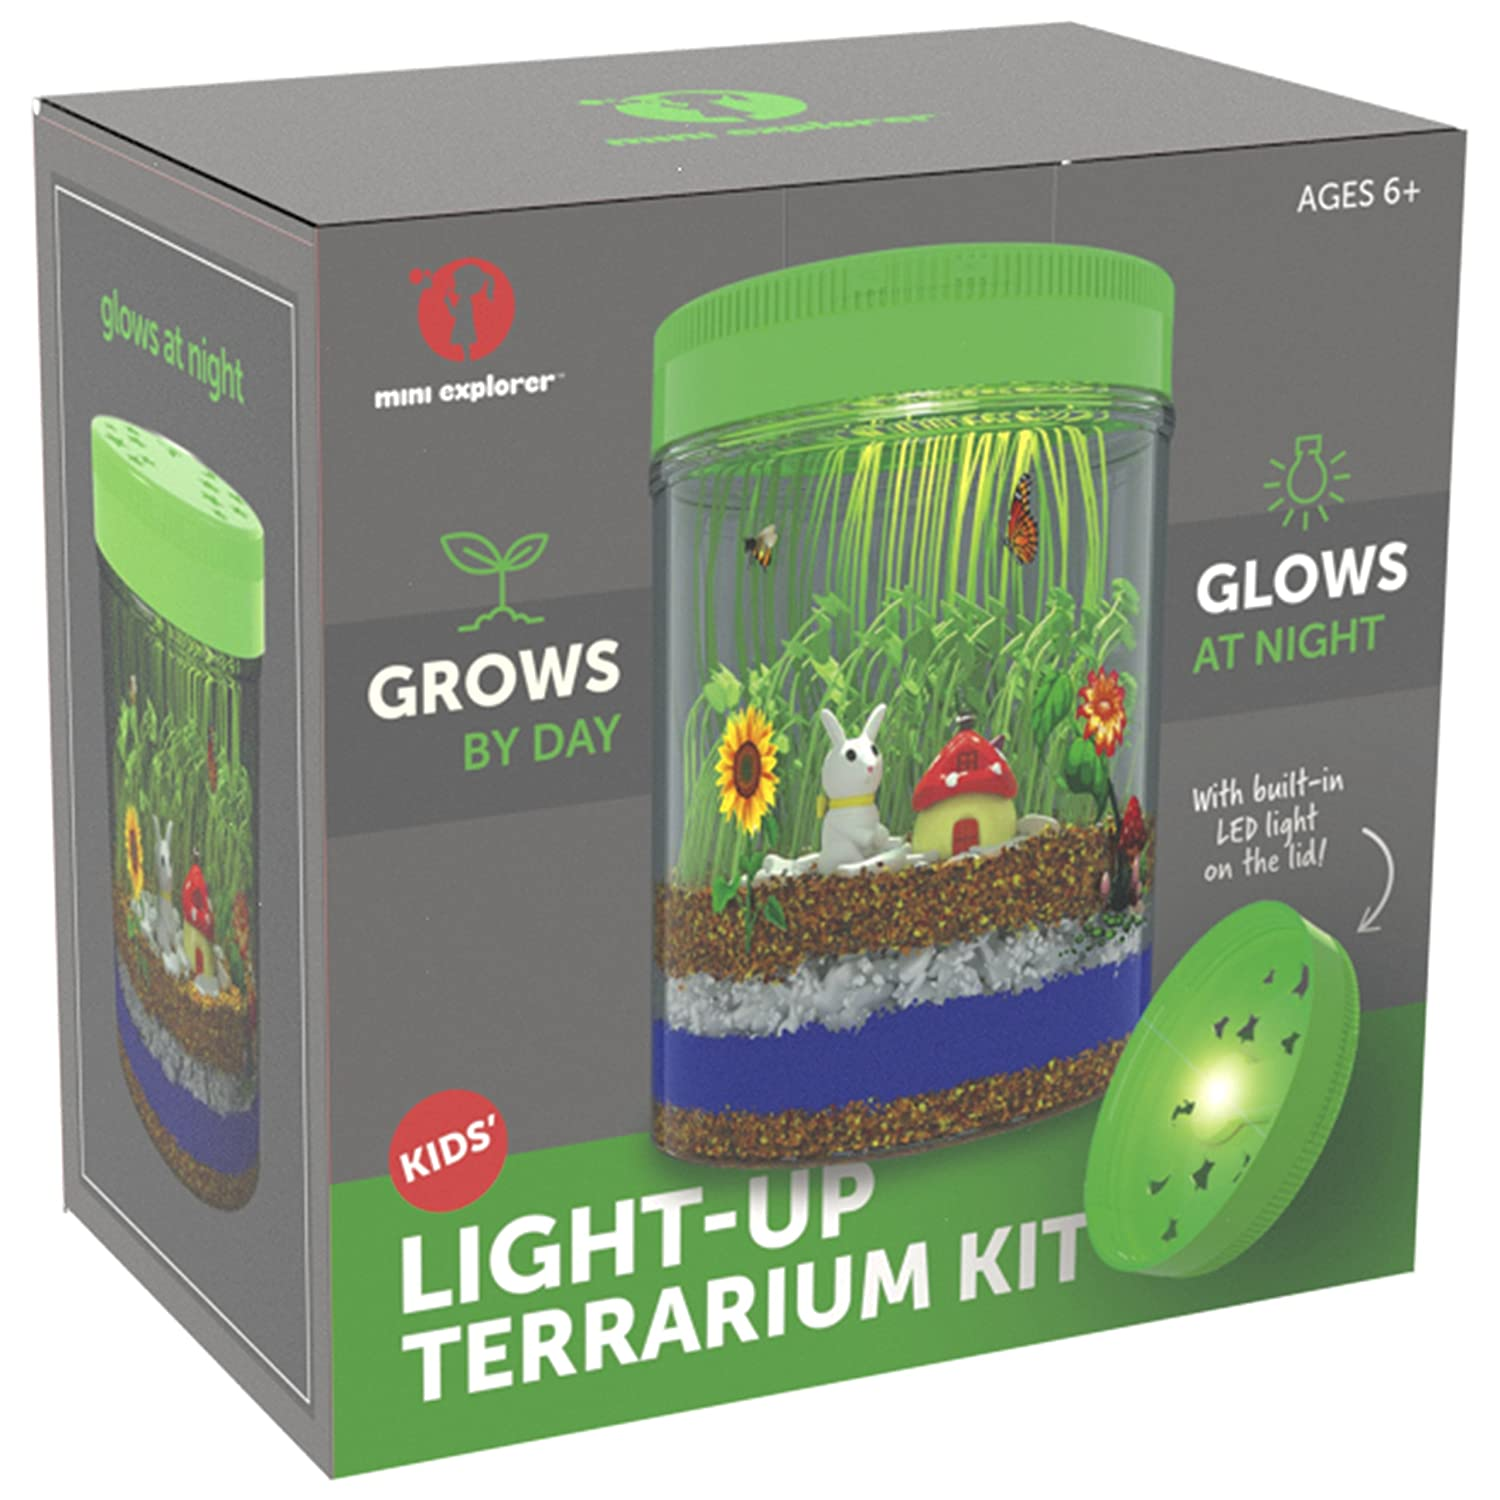 Amazon Light up Terrarium Kit for Kids with LED Light on Lid